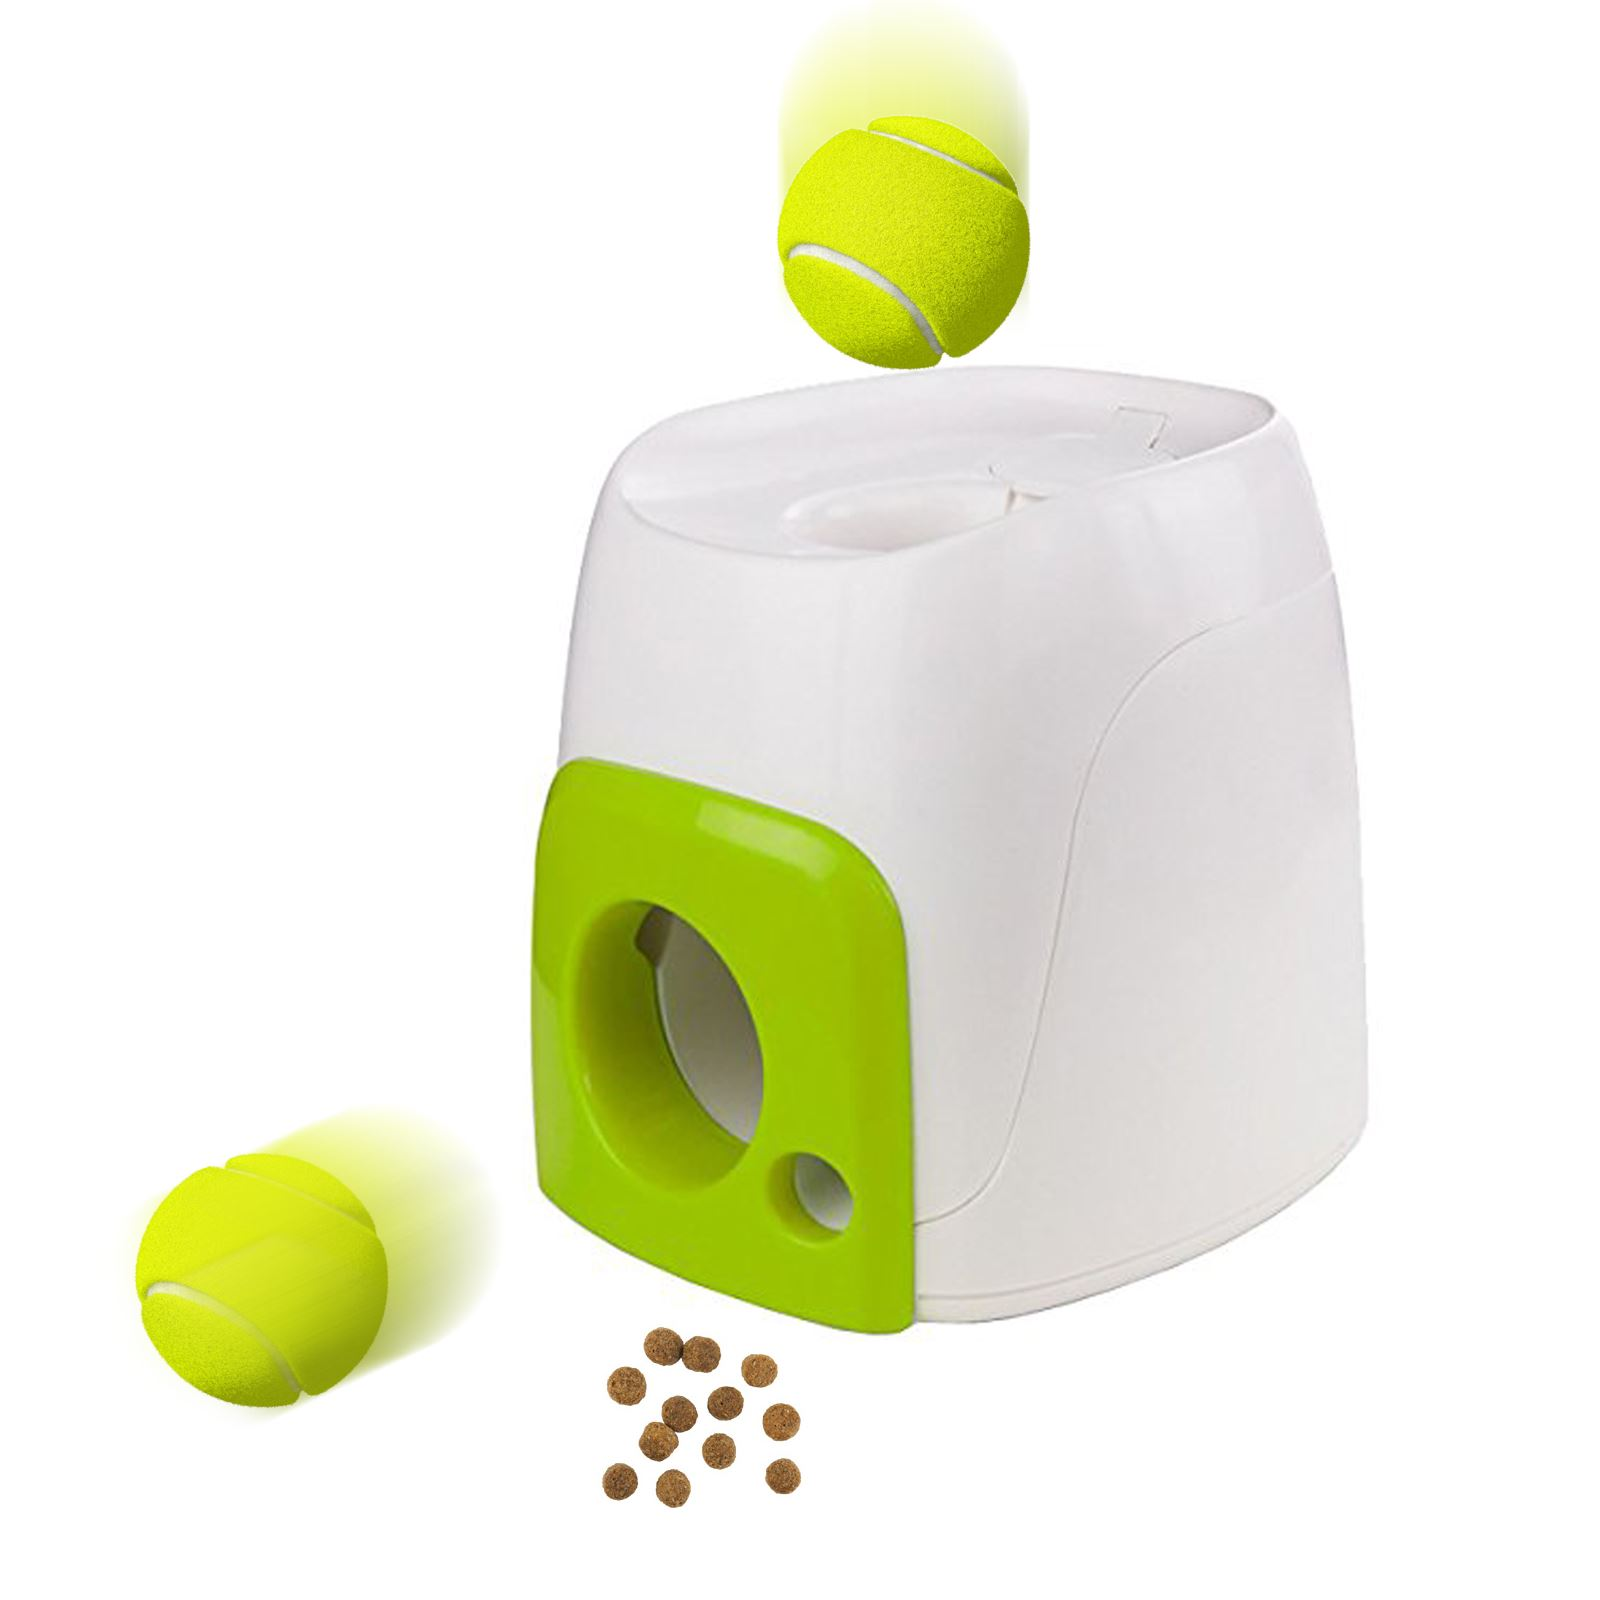 Tennis Ball Launcher >> All for Paws Interactive Dog Fetch N Treat Dispenser Trainer Ball Toy Play Game | eBay